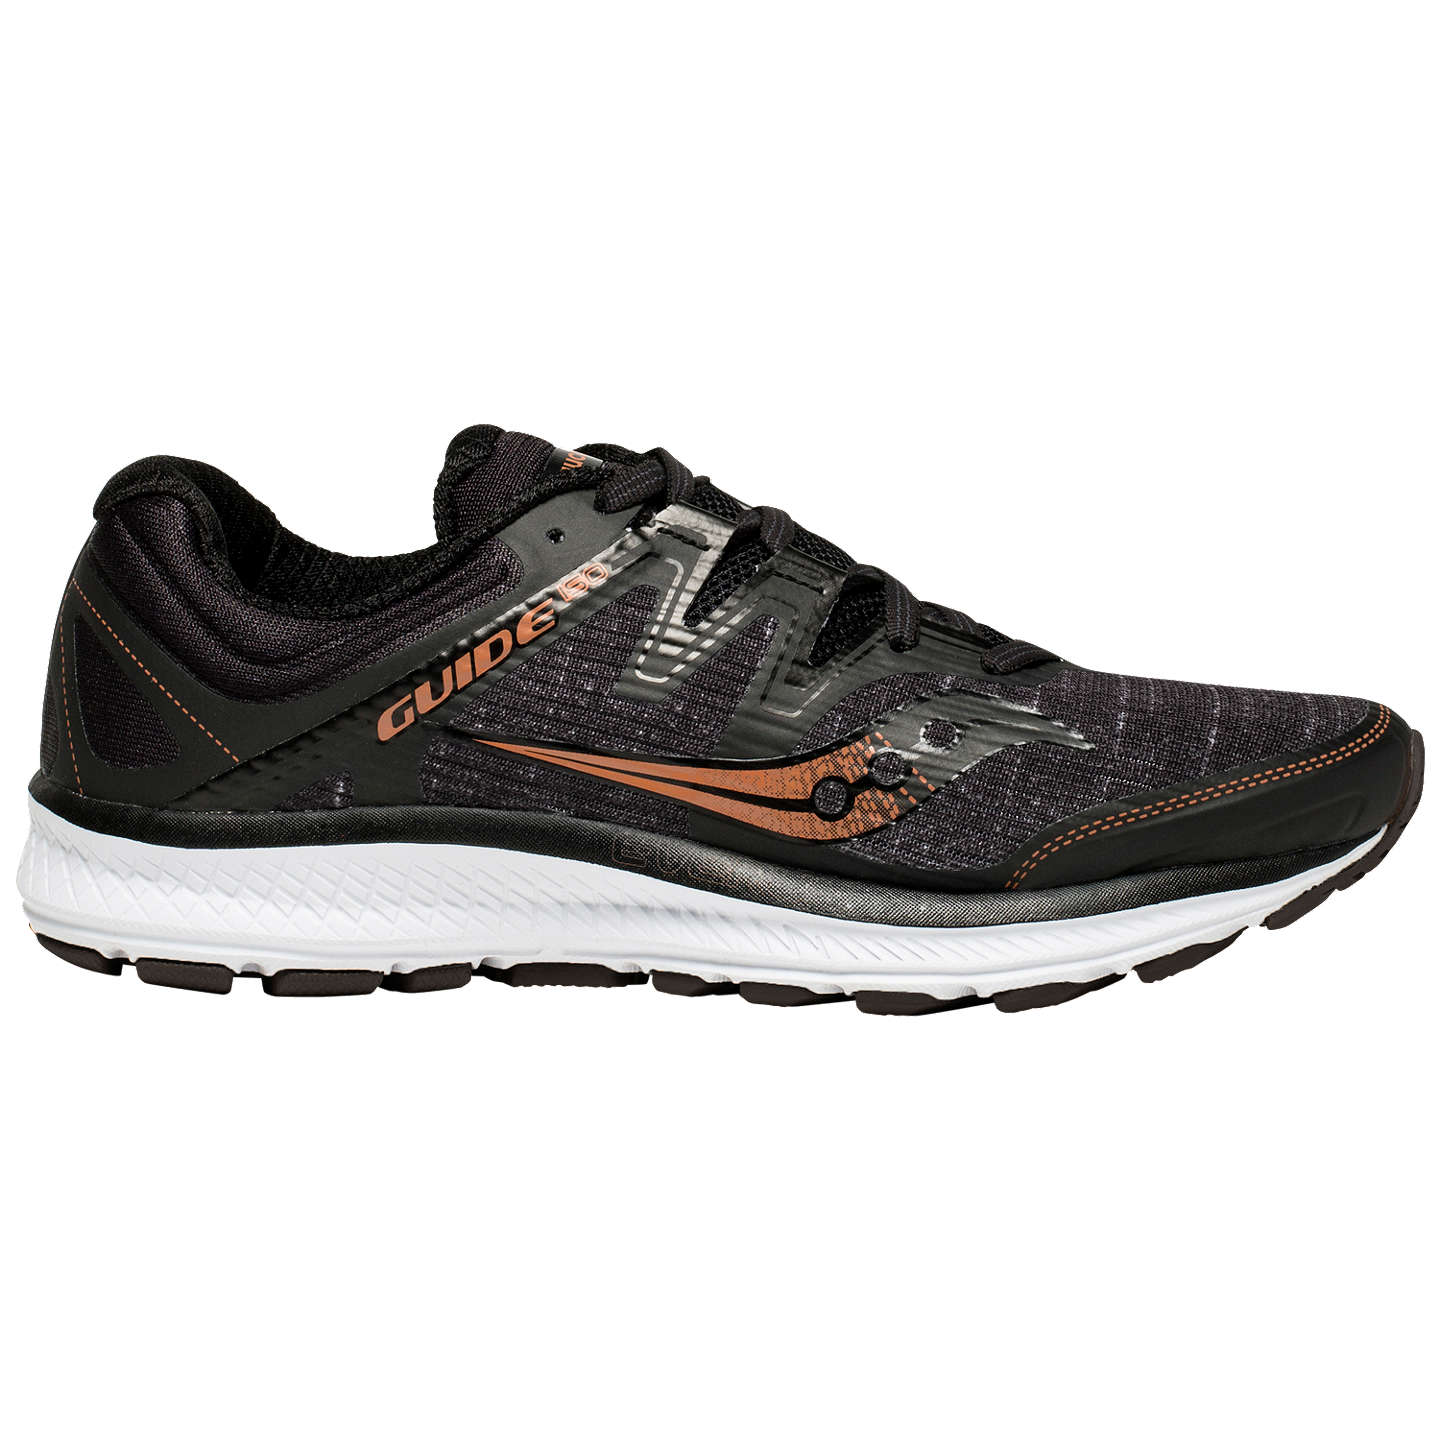 GUIDE ISO - Stabilty running shoes - grey/denim/copper New Styles Sale Online Manchester Discount Fake Best Price F8QVpWcU